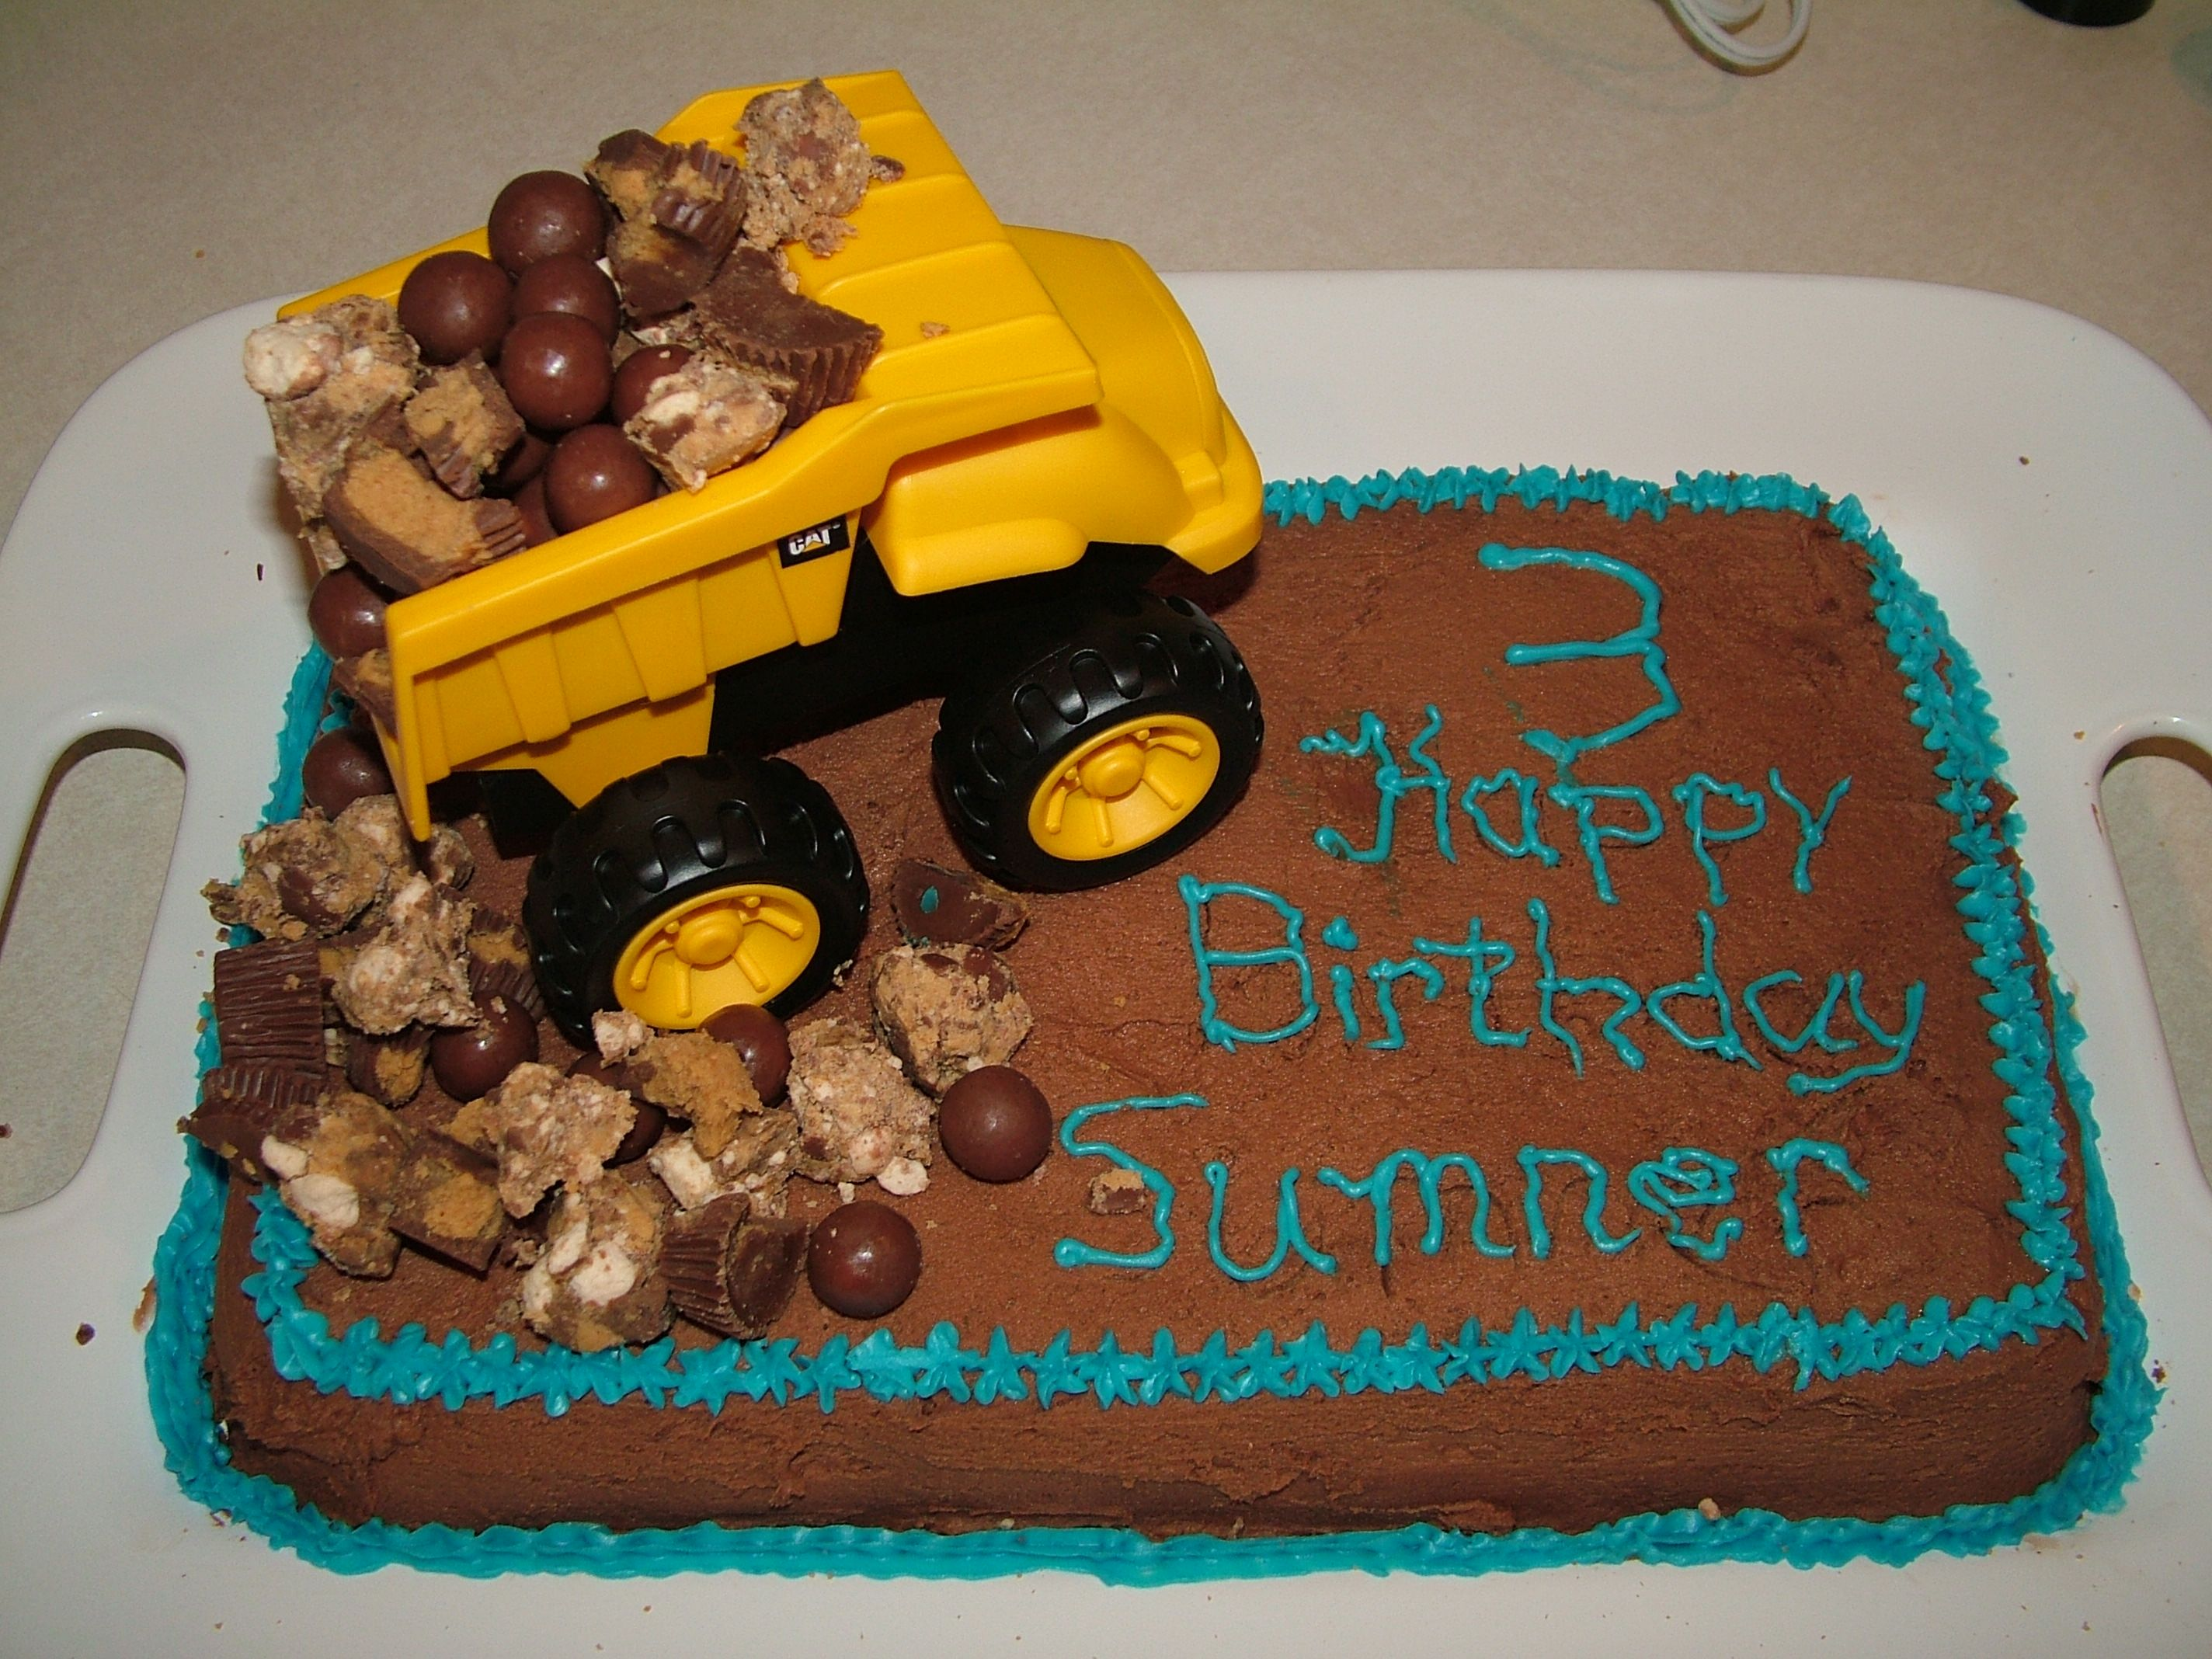 Dump Truck Cake Design : Dump Truck Cake boy birthday cake kids cake Decorated ...